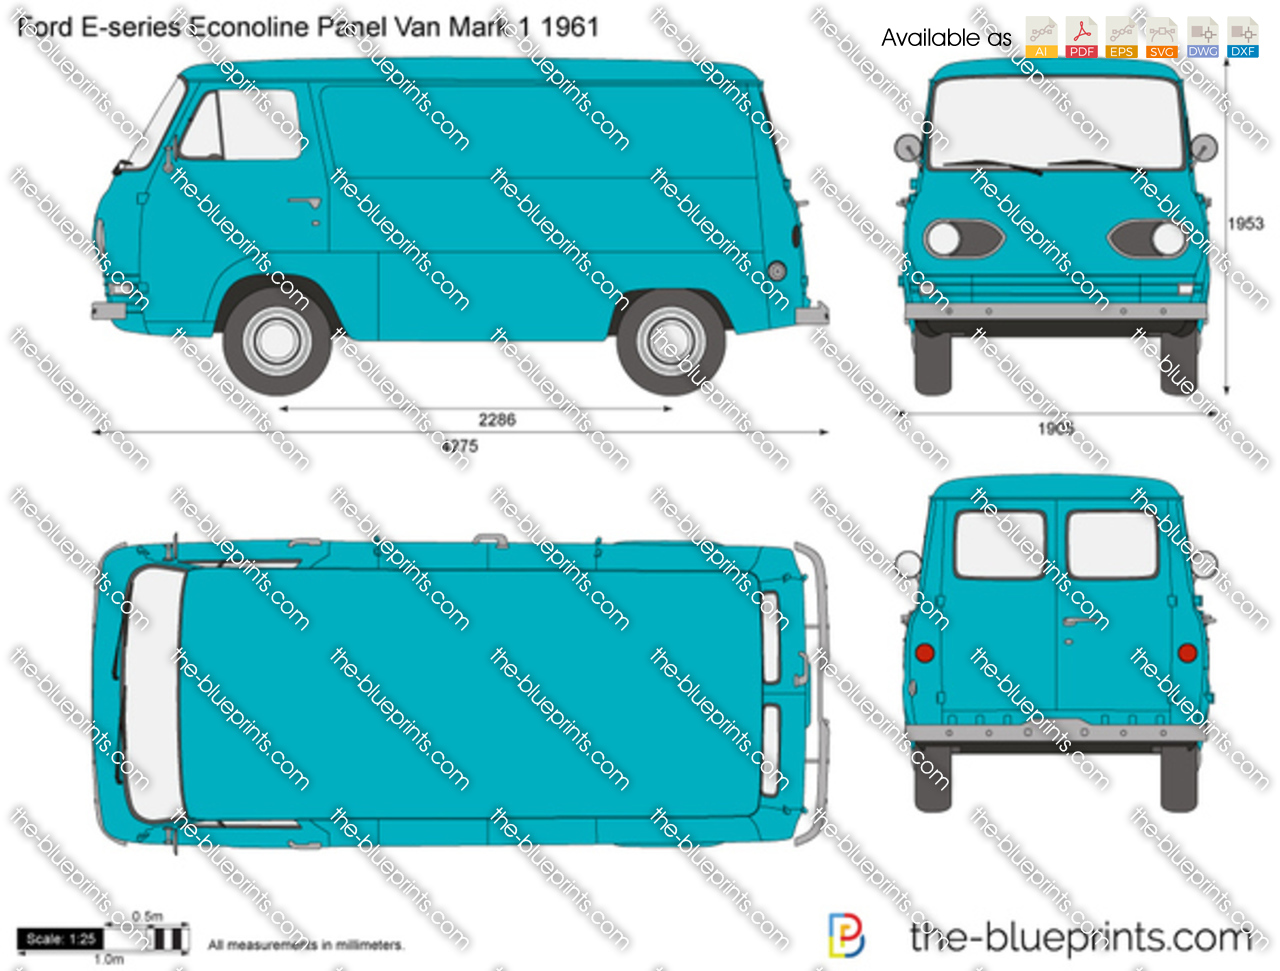 Ford E-series Econoline Panel Van Mark 1 1961